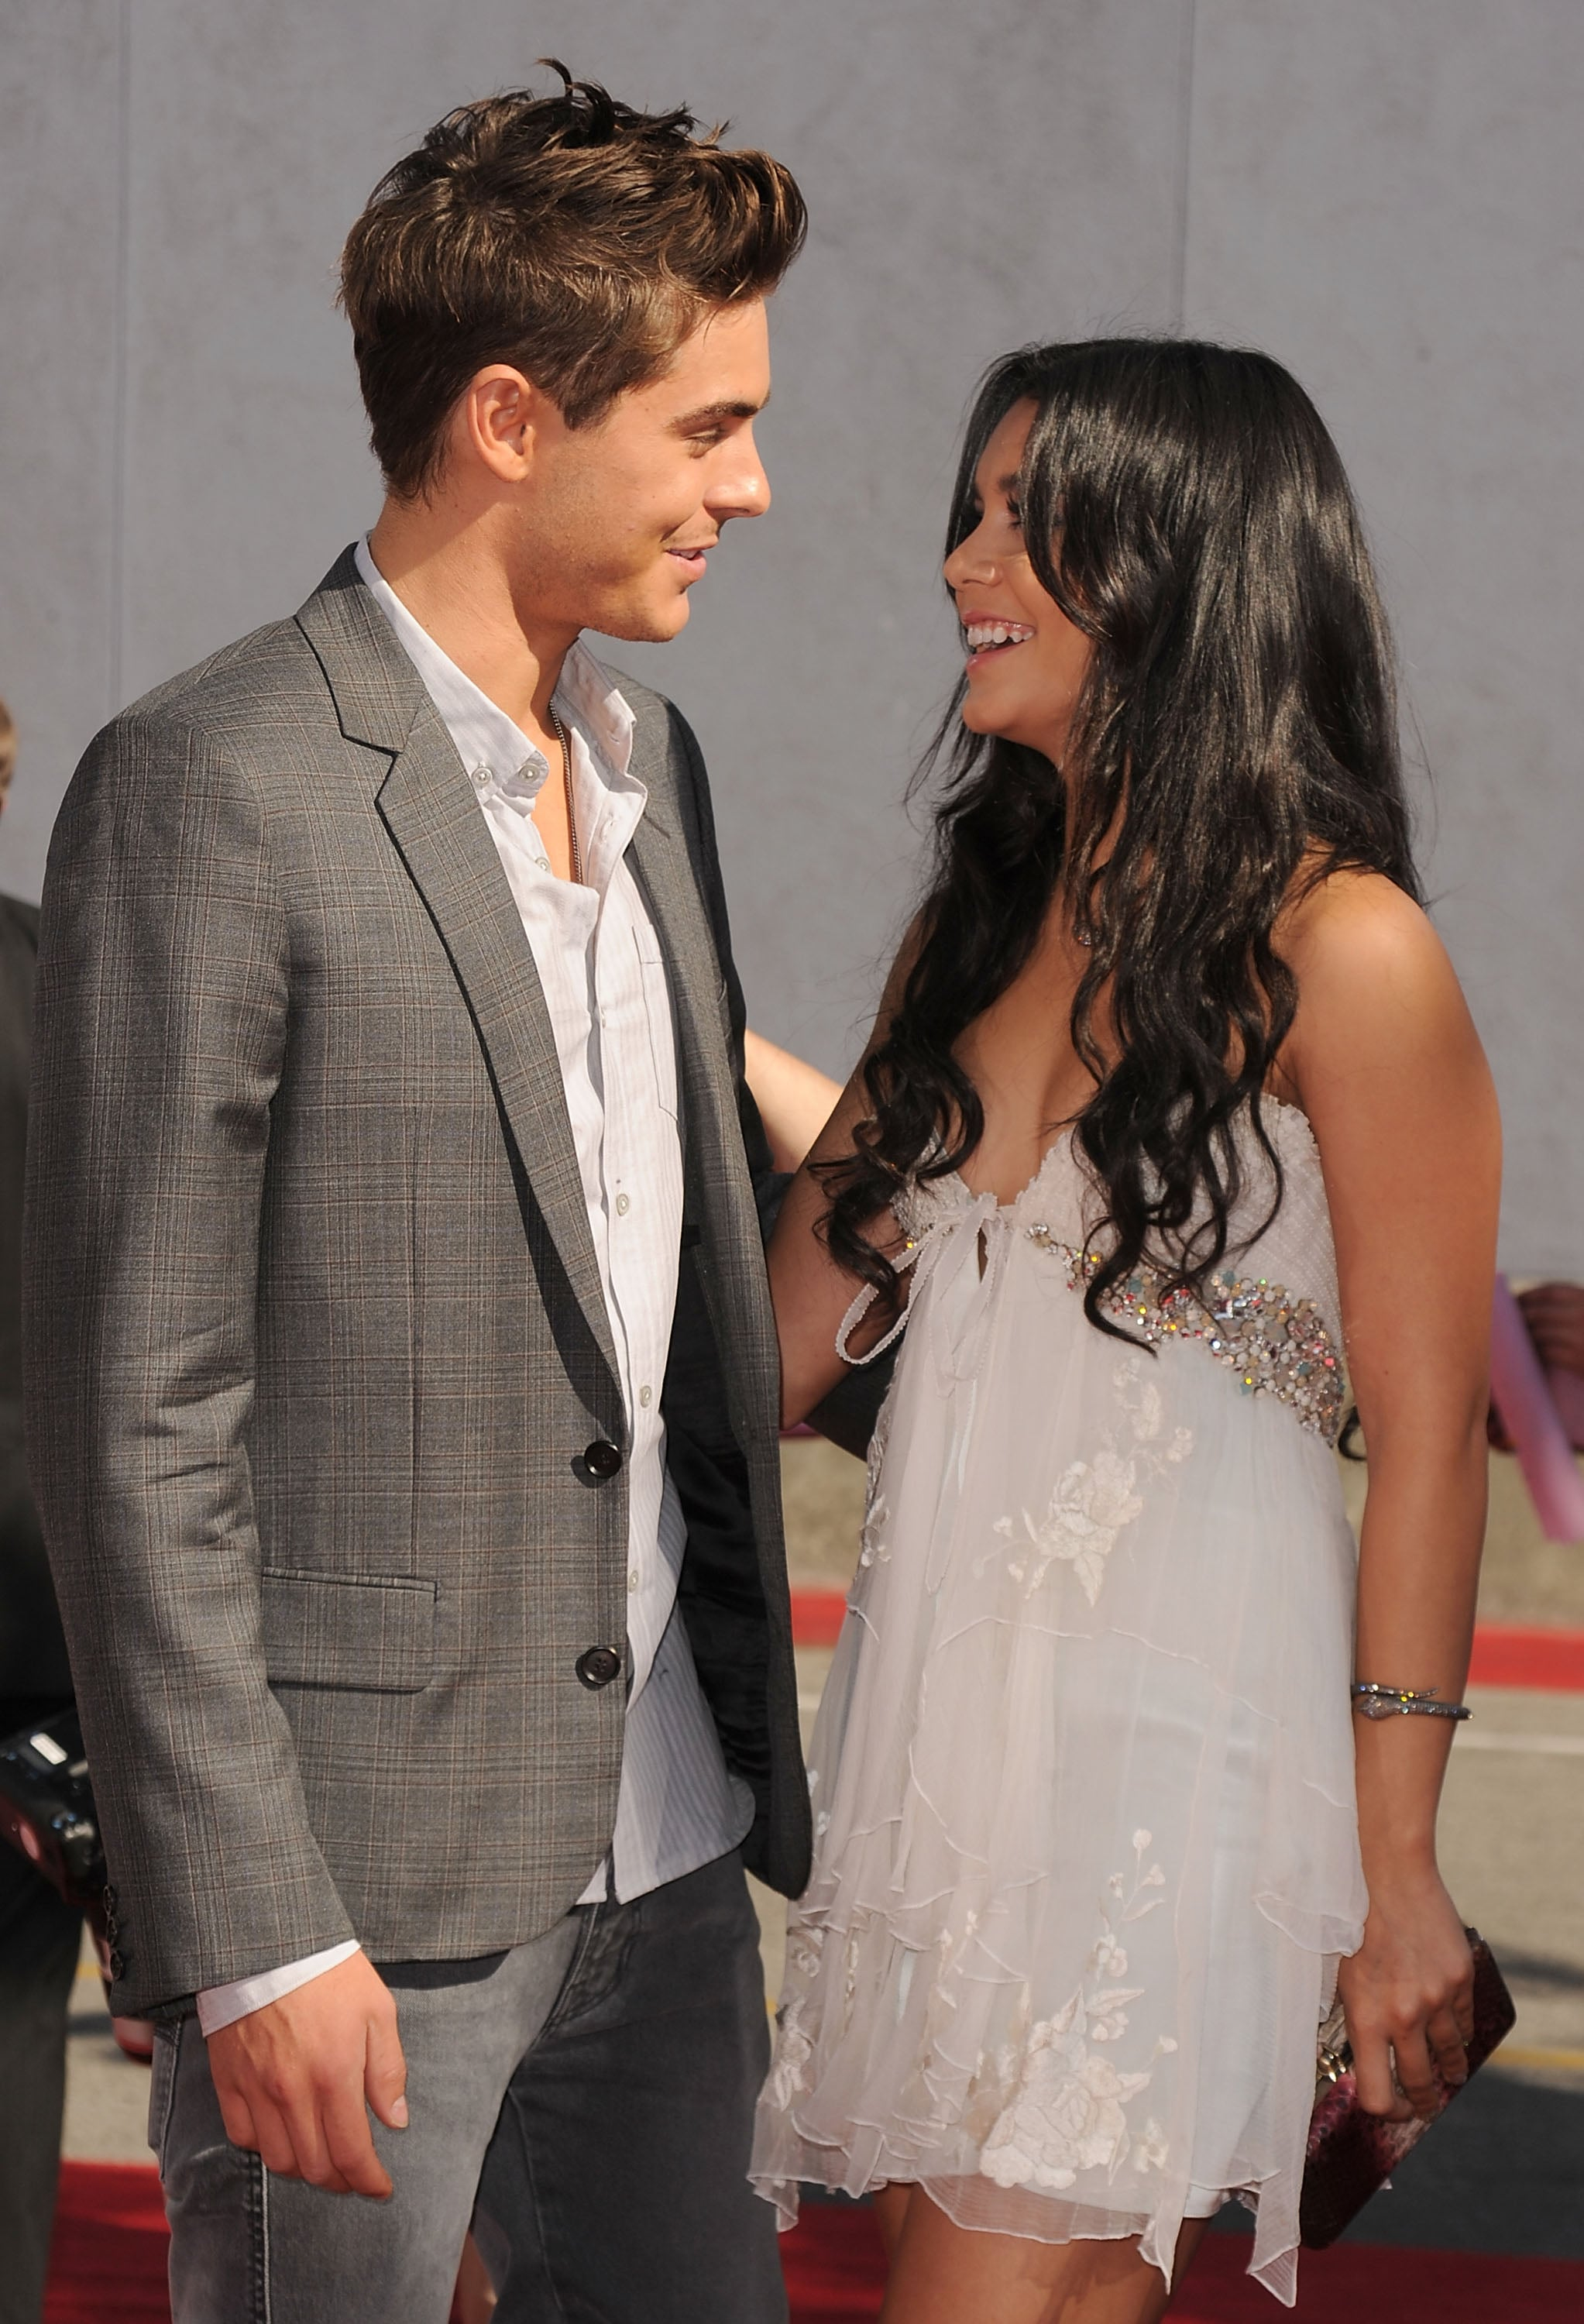 And yes, he was still totally in love with Vanessa.